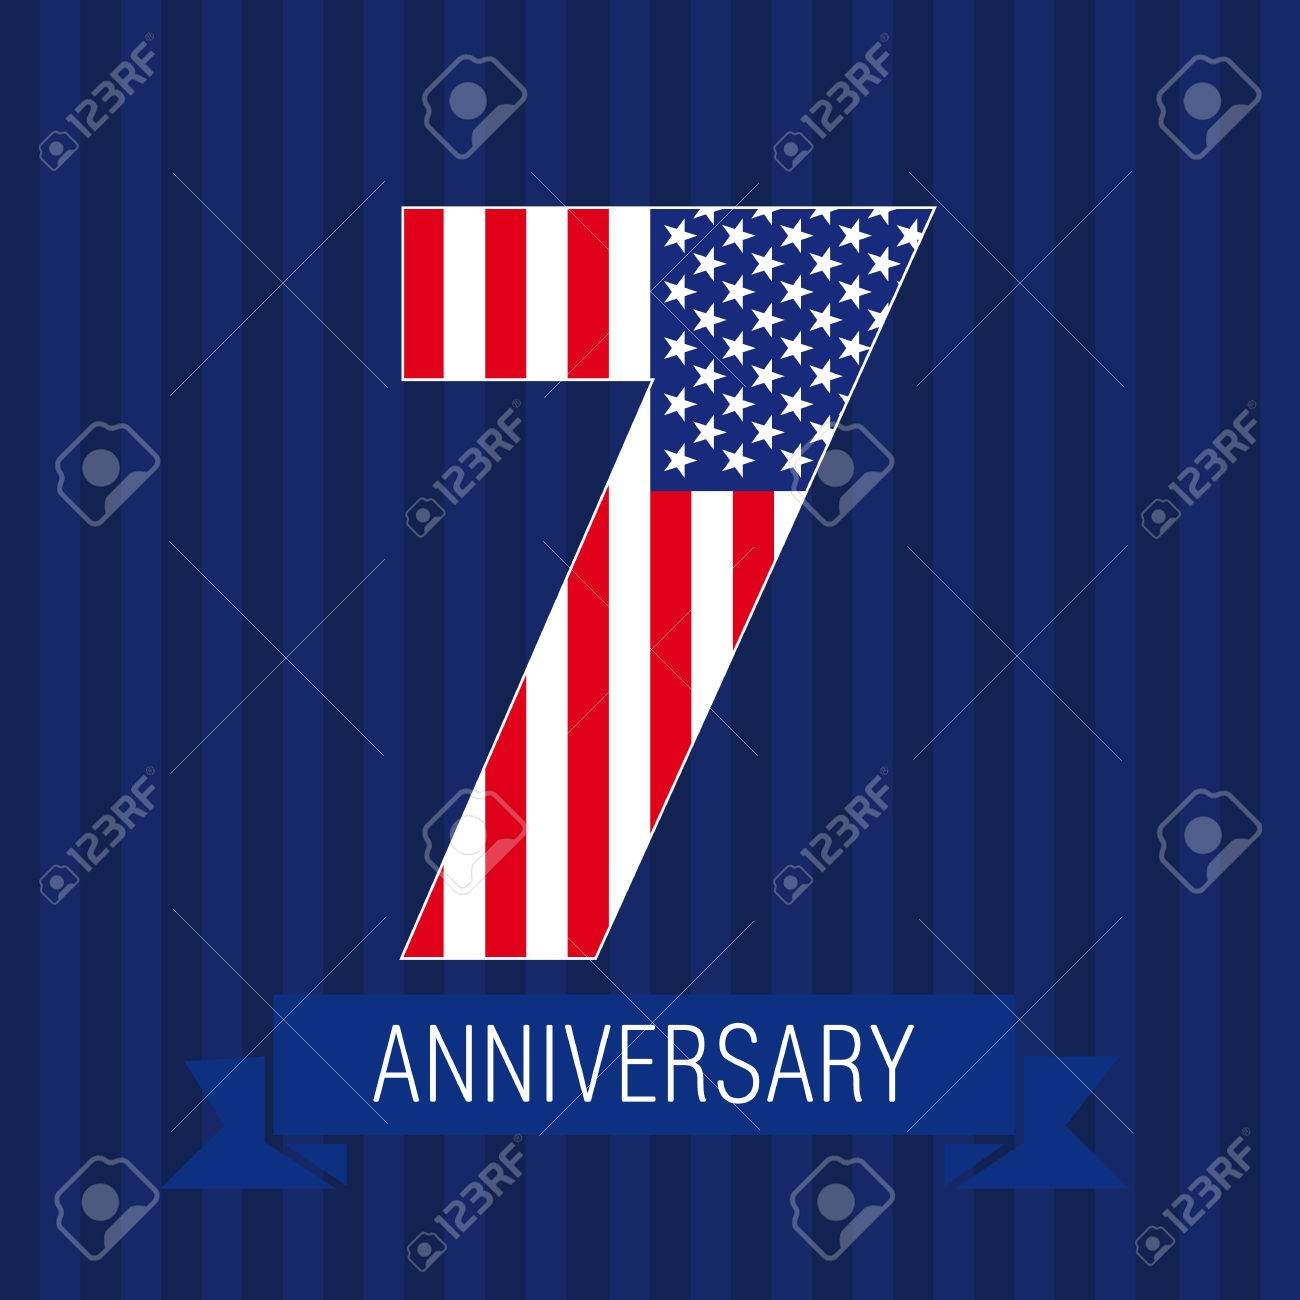 anniversary 7 us flag logo template of celebrating icon of 7th